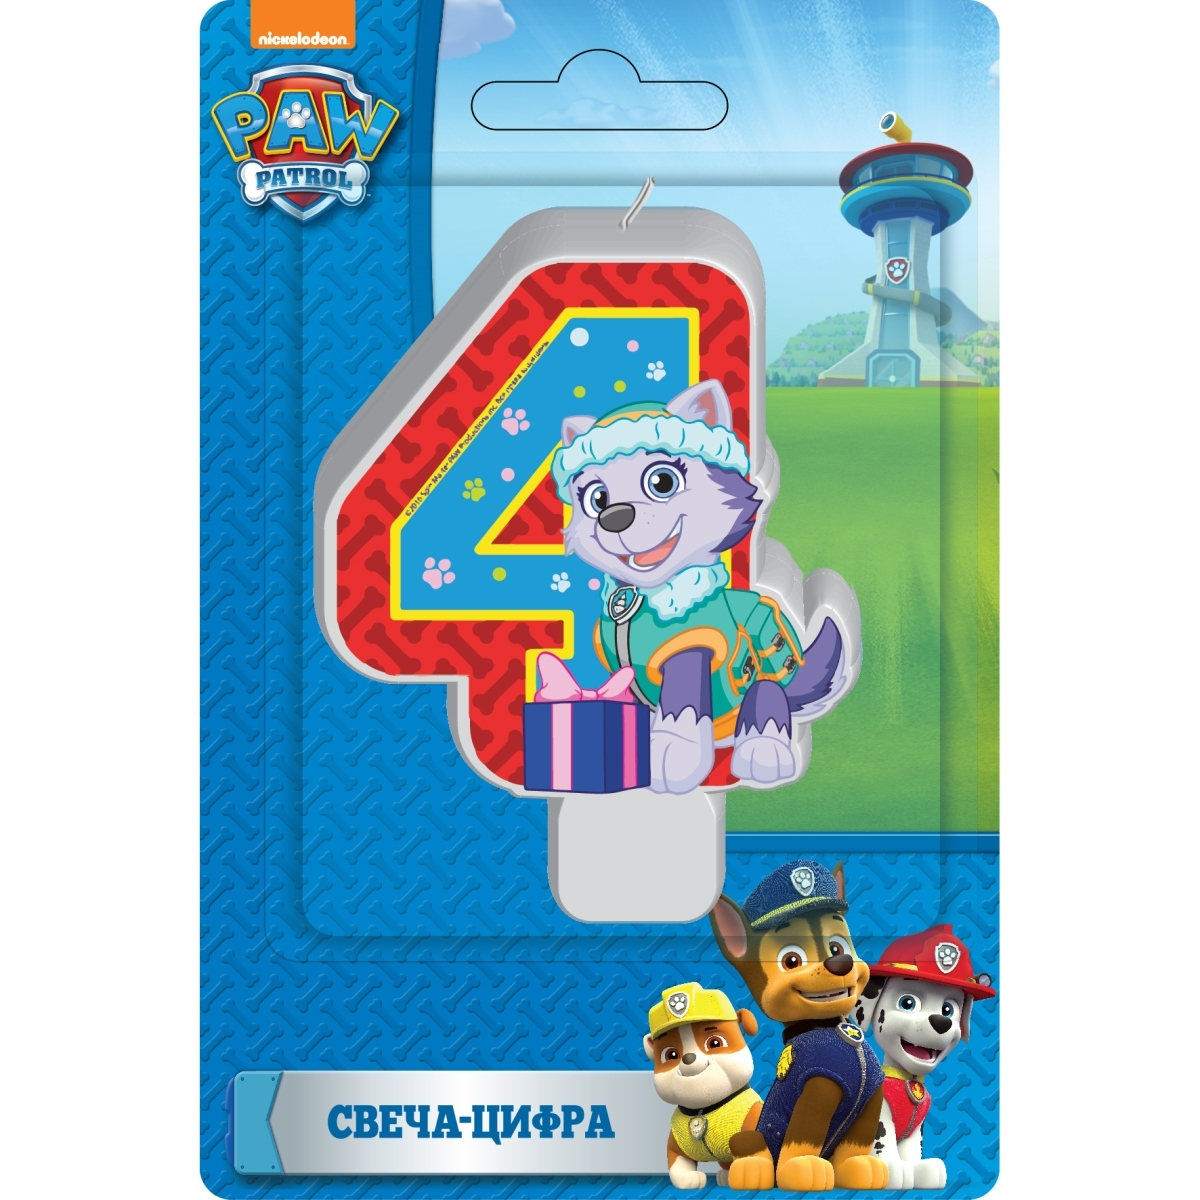 Paw Patrol Paw Patrol Paw Patrol Цифра 4 20cm canine patrol dog toys russian anime doll action figures car patrol puppy toy patrulla canina juguetes gift for child m134